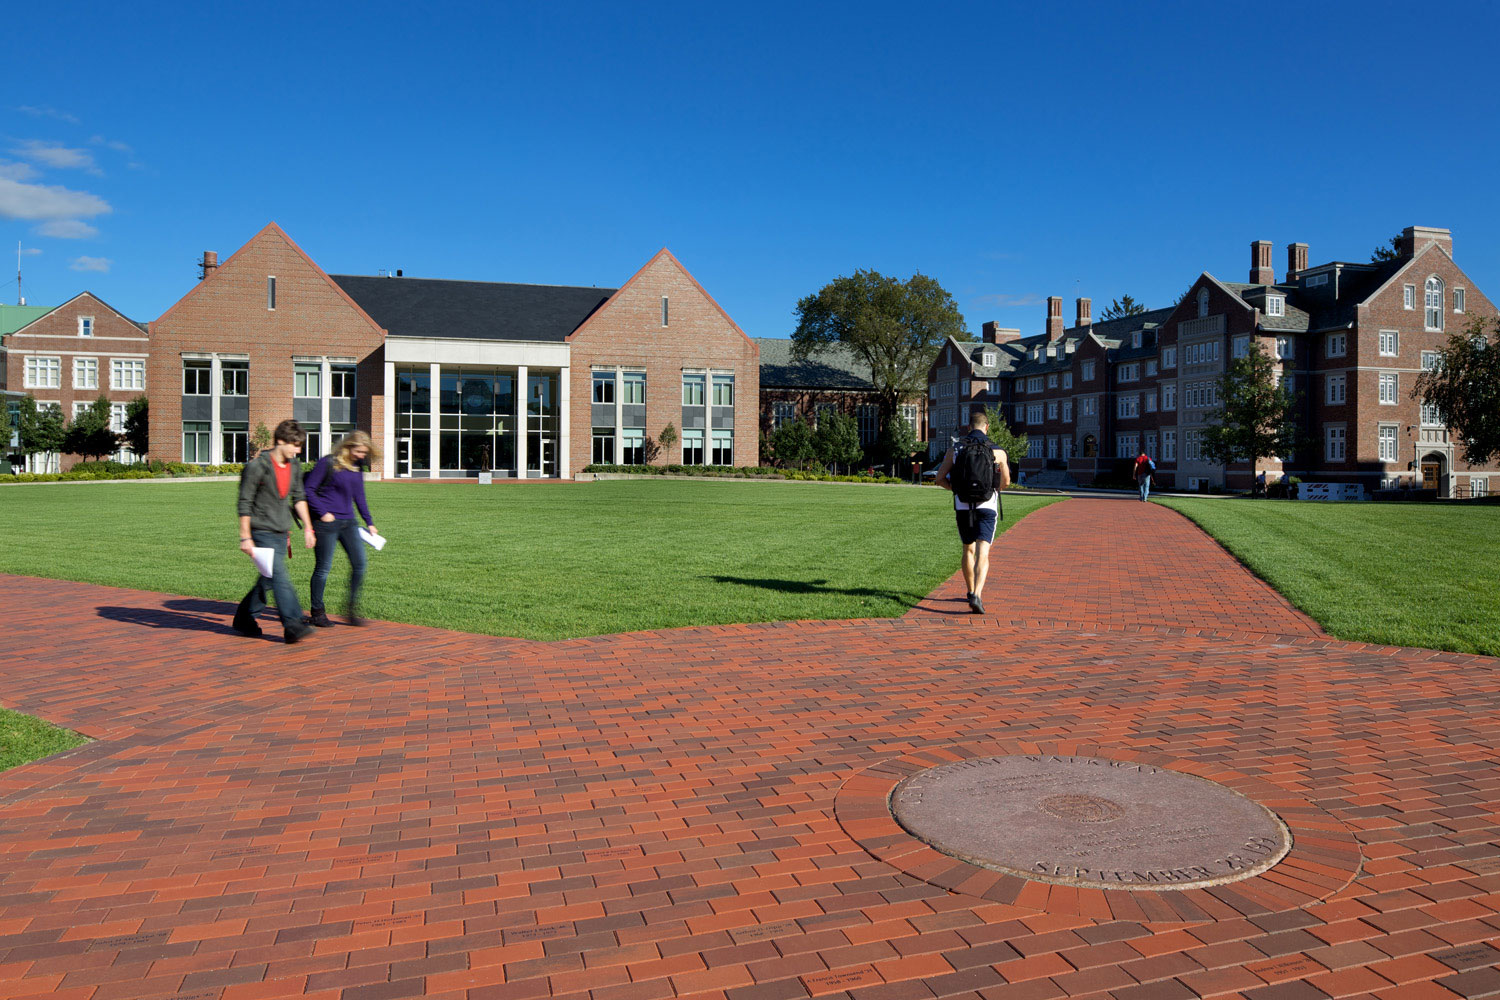 WPI's colors of crimson and gray are reflected in the brick walkways. (Photo by Ed Wonsek)